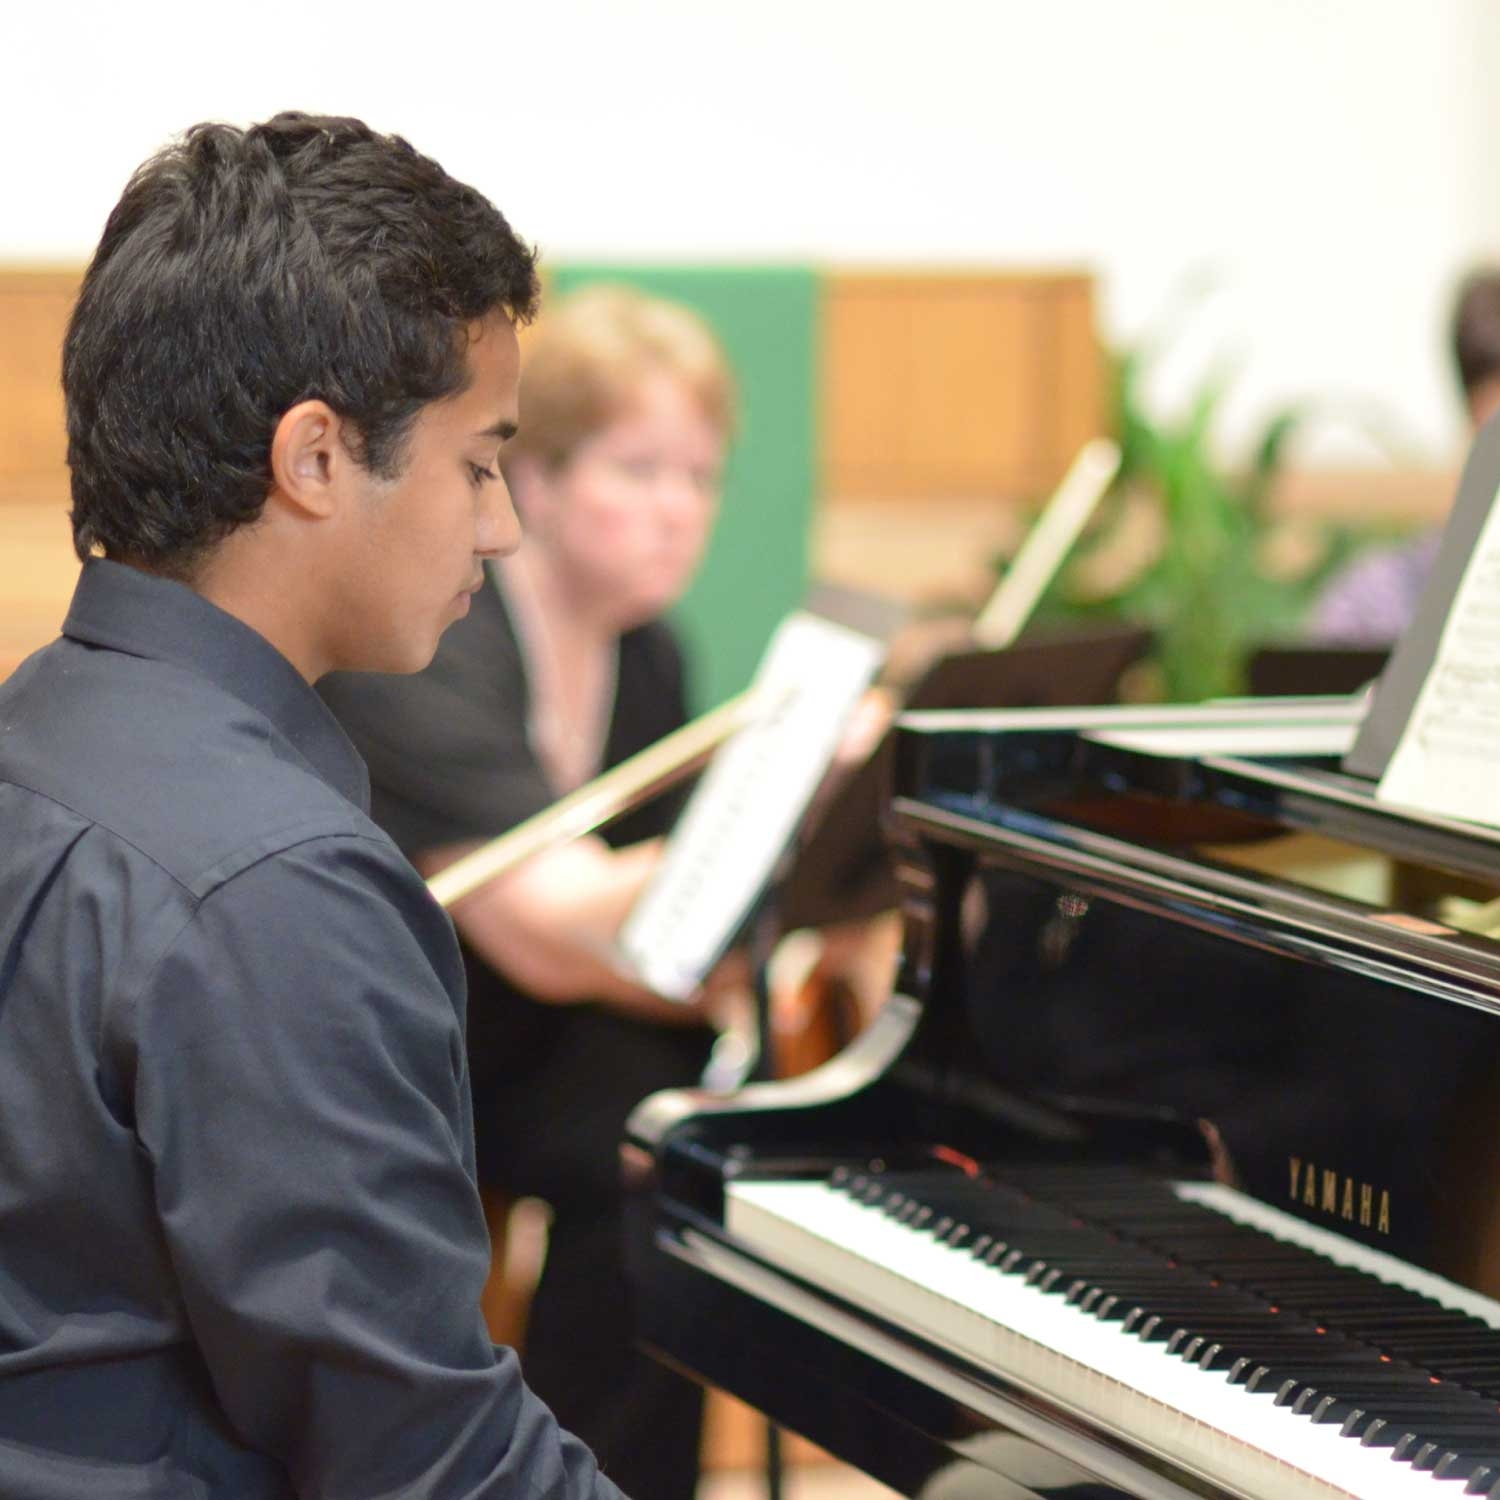 Alec-at-the-Concerto-Event-2012.jpg